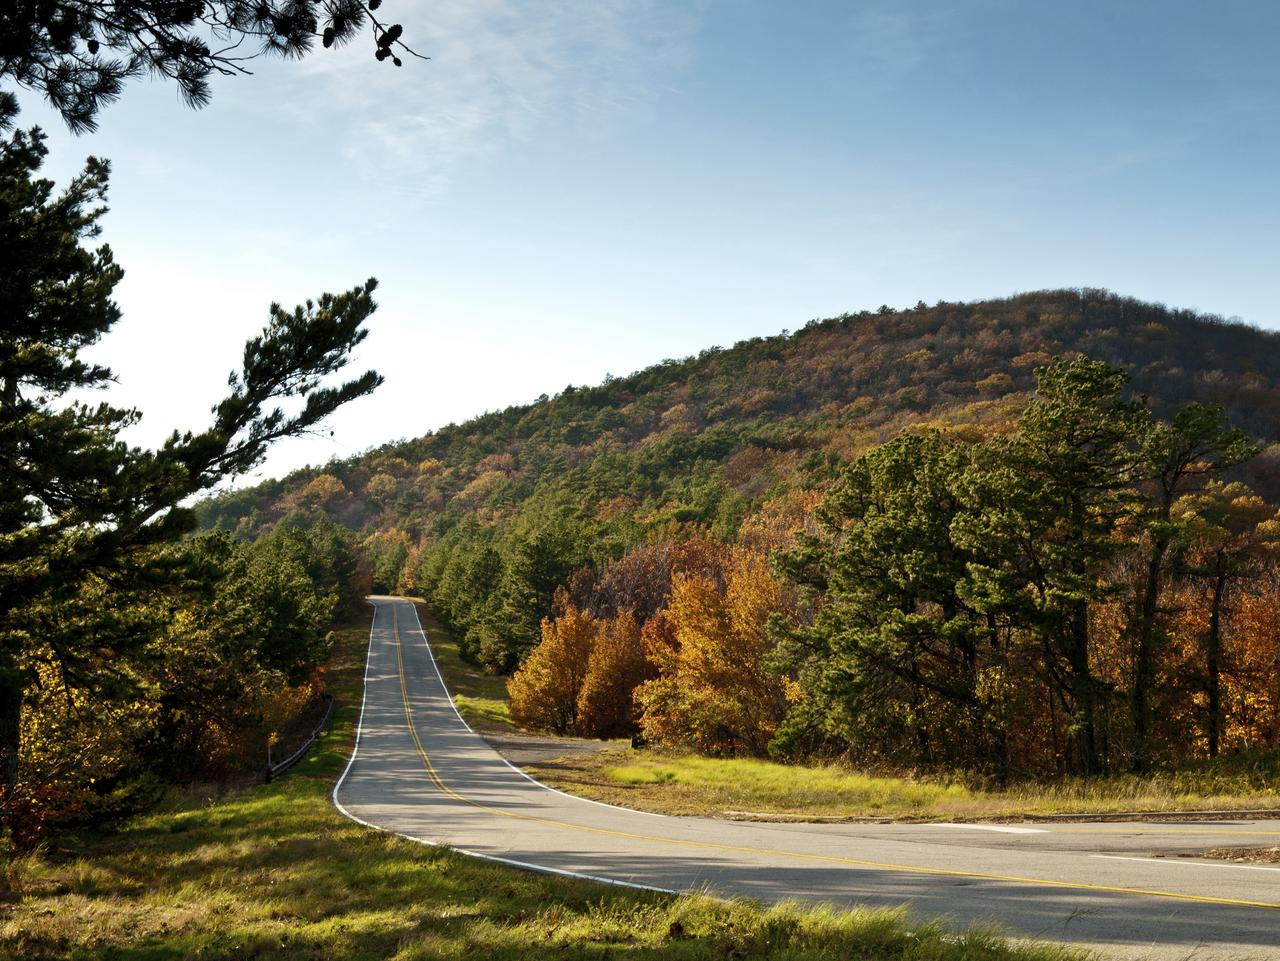 Talimena Scenic Drive road in the Ouachita Mountains. Also known as Talimena National Scenic Byway.